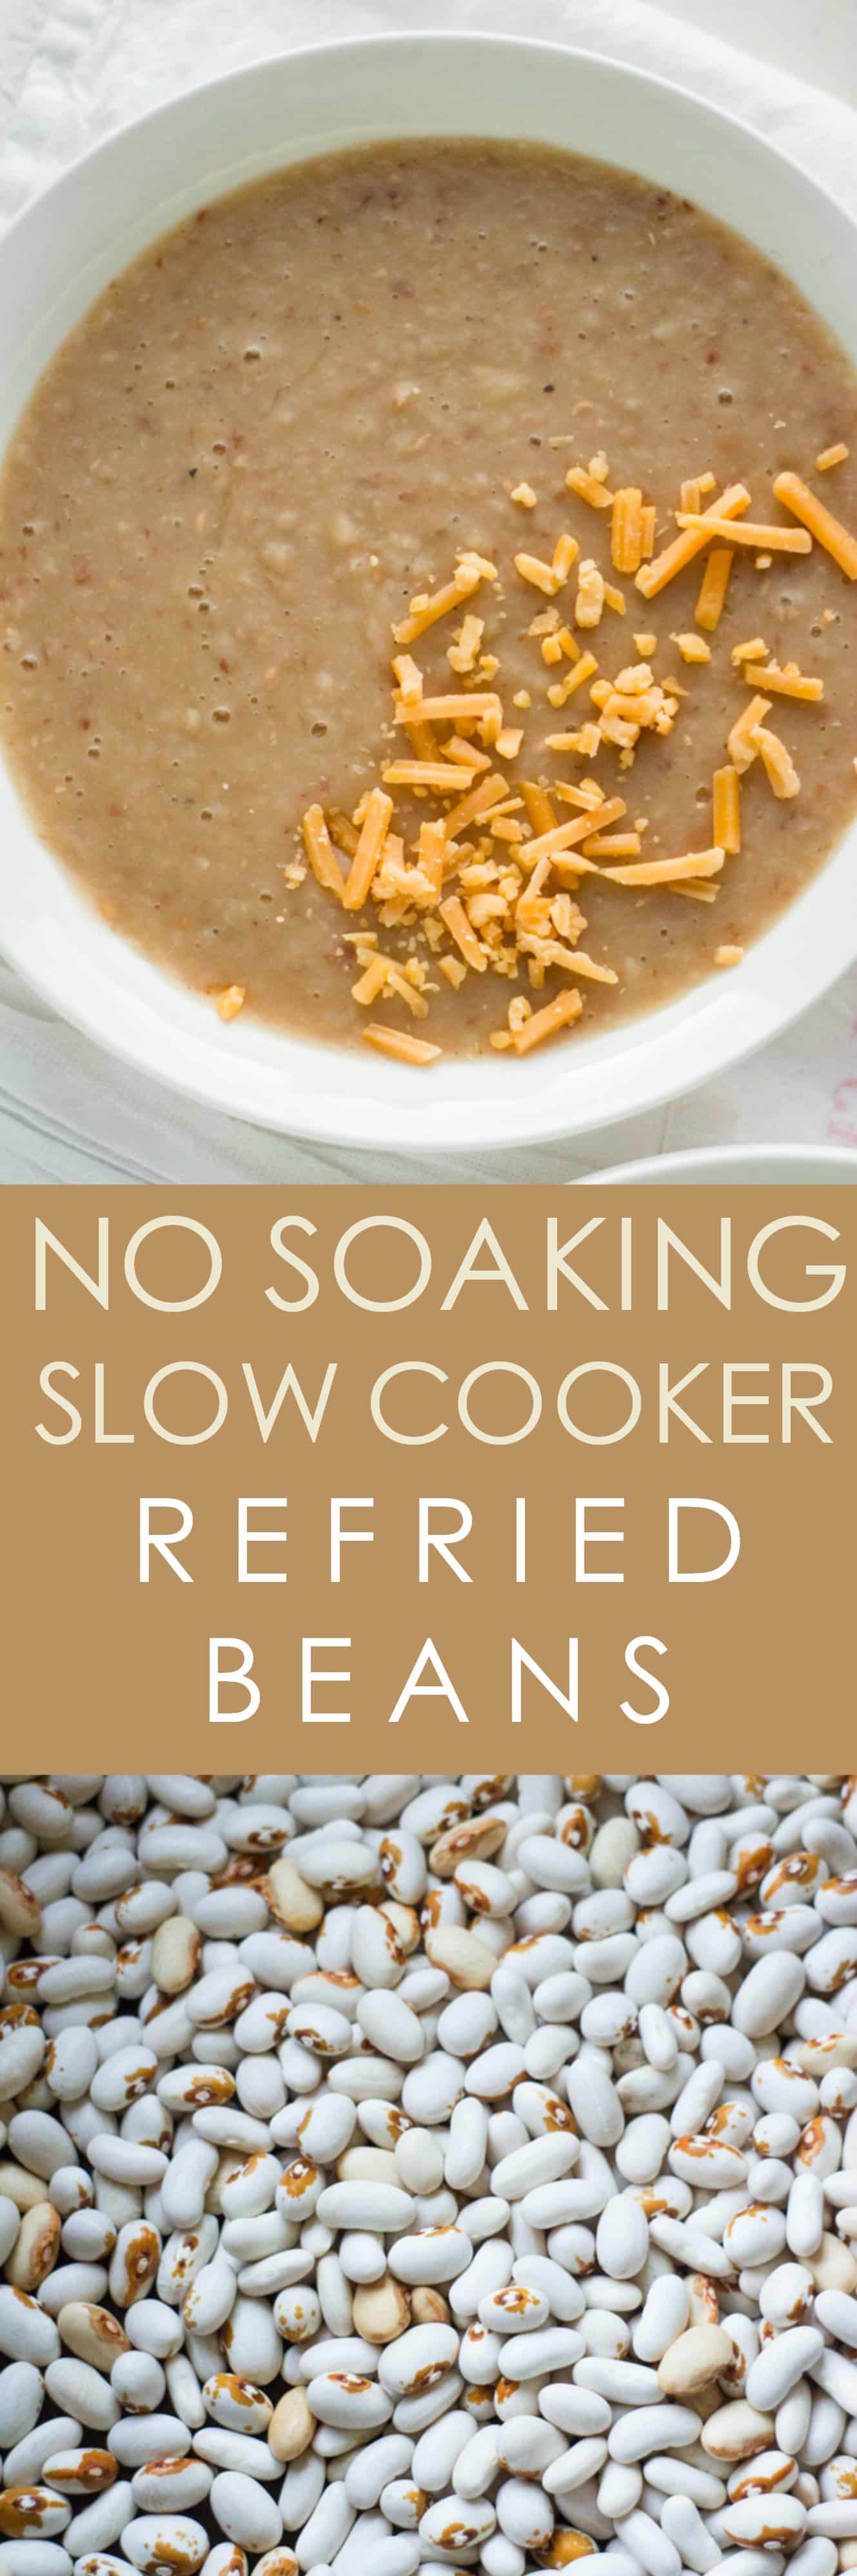 DELICIOUS, NO SOAKING REQUIRED, Slow Cooker Refried Beans! This easy homemade refried beans recipe cooks dry pinto beans in the slow cooker! They make the perfect tasty side dish for authentic Mexican meals. You'll never use canned beans again!